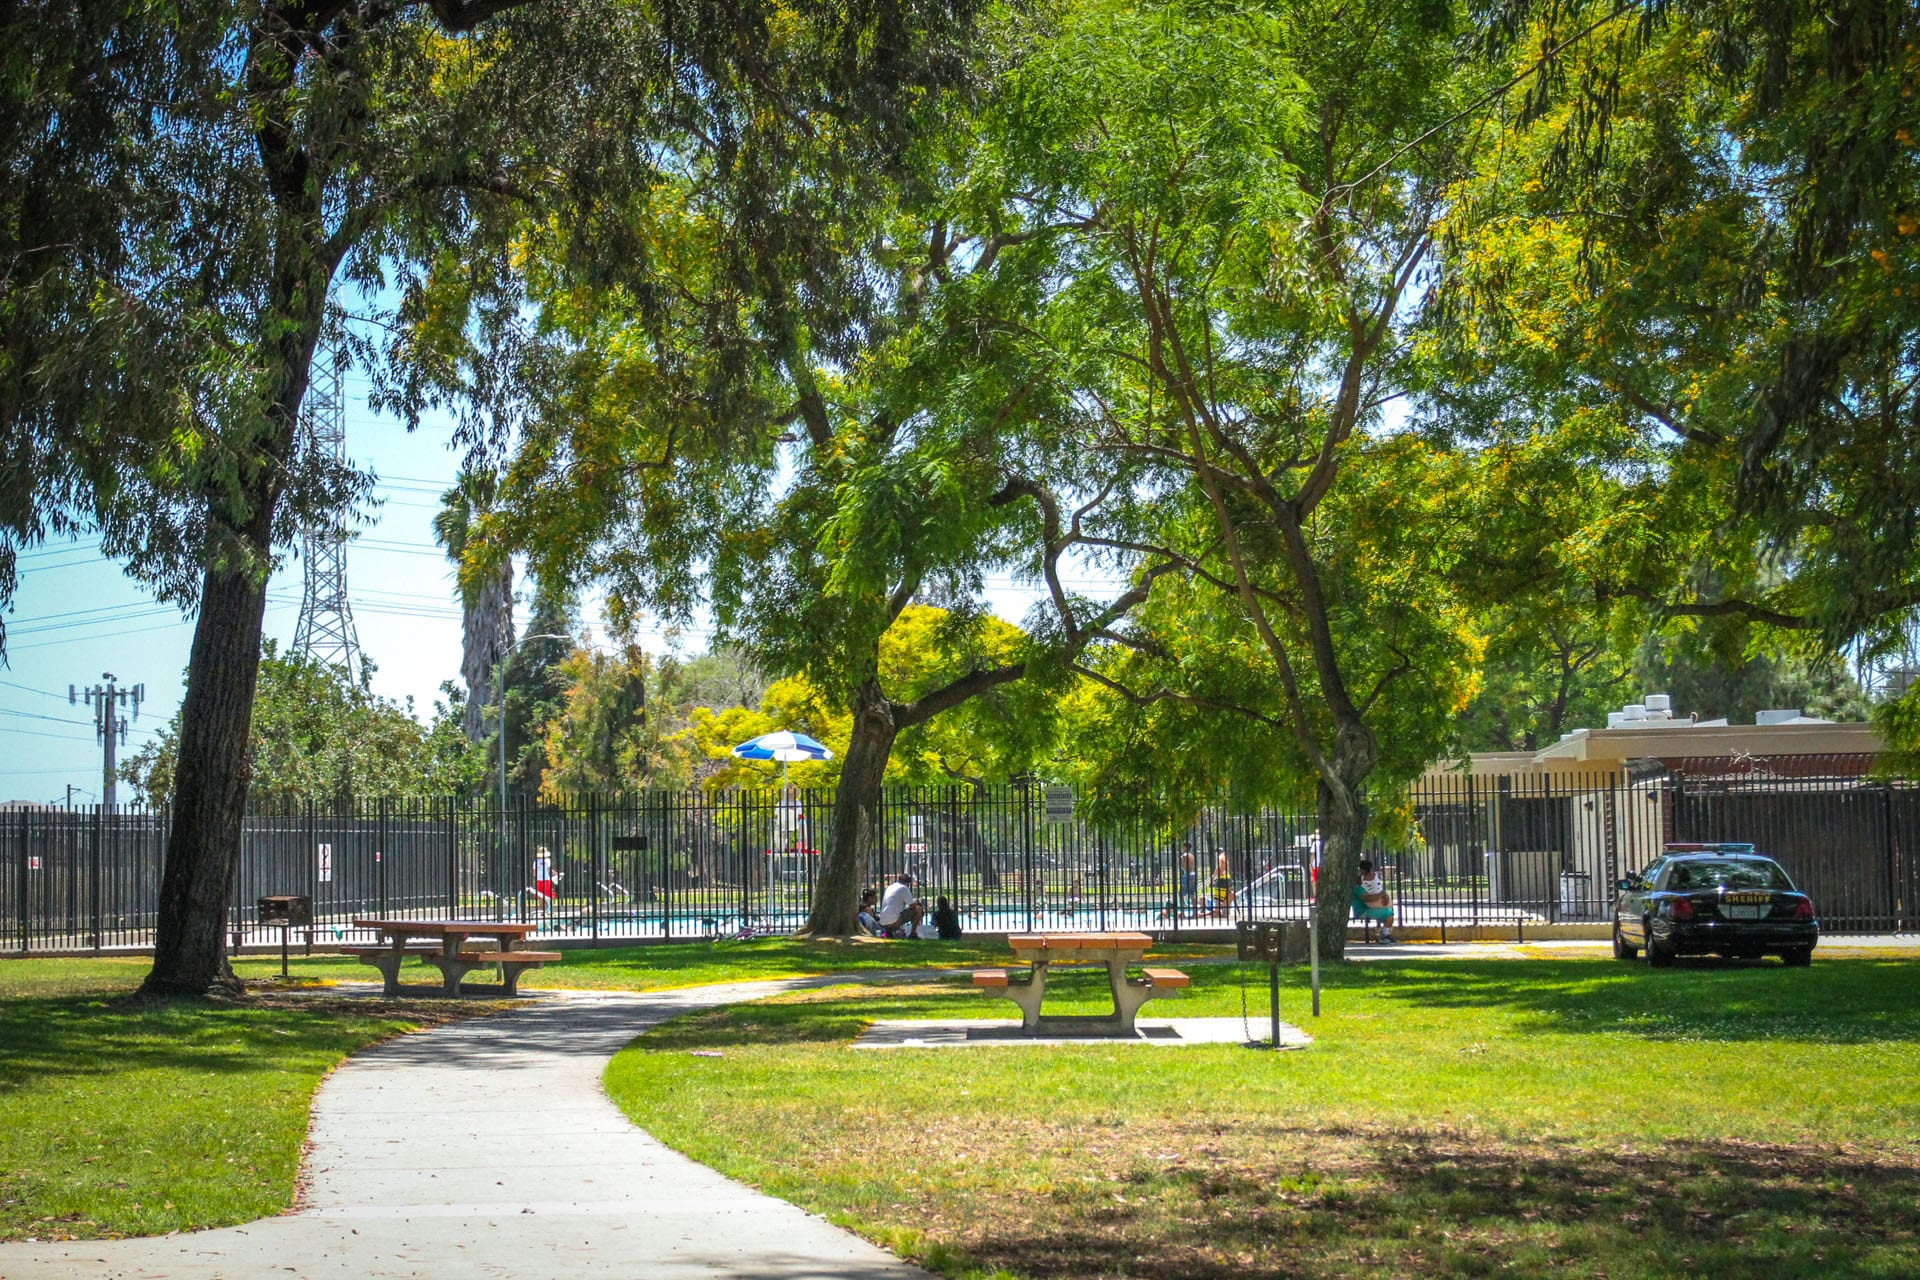 Picnic tables surrounded by trees